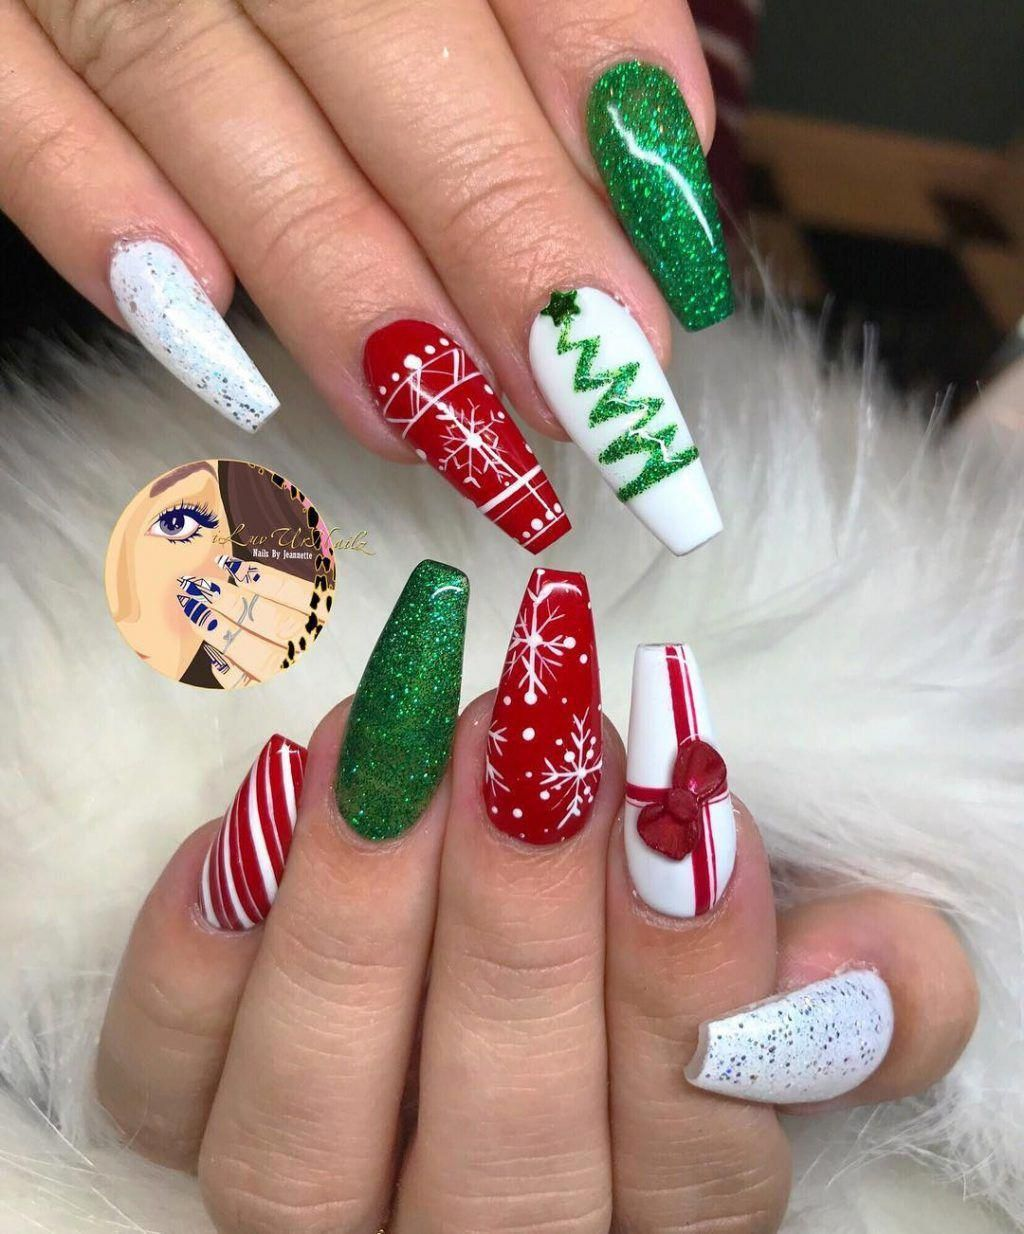 Stunning Coffin Shaped Green and Red Christmas Nails